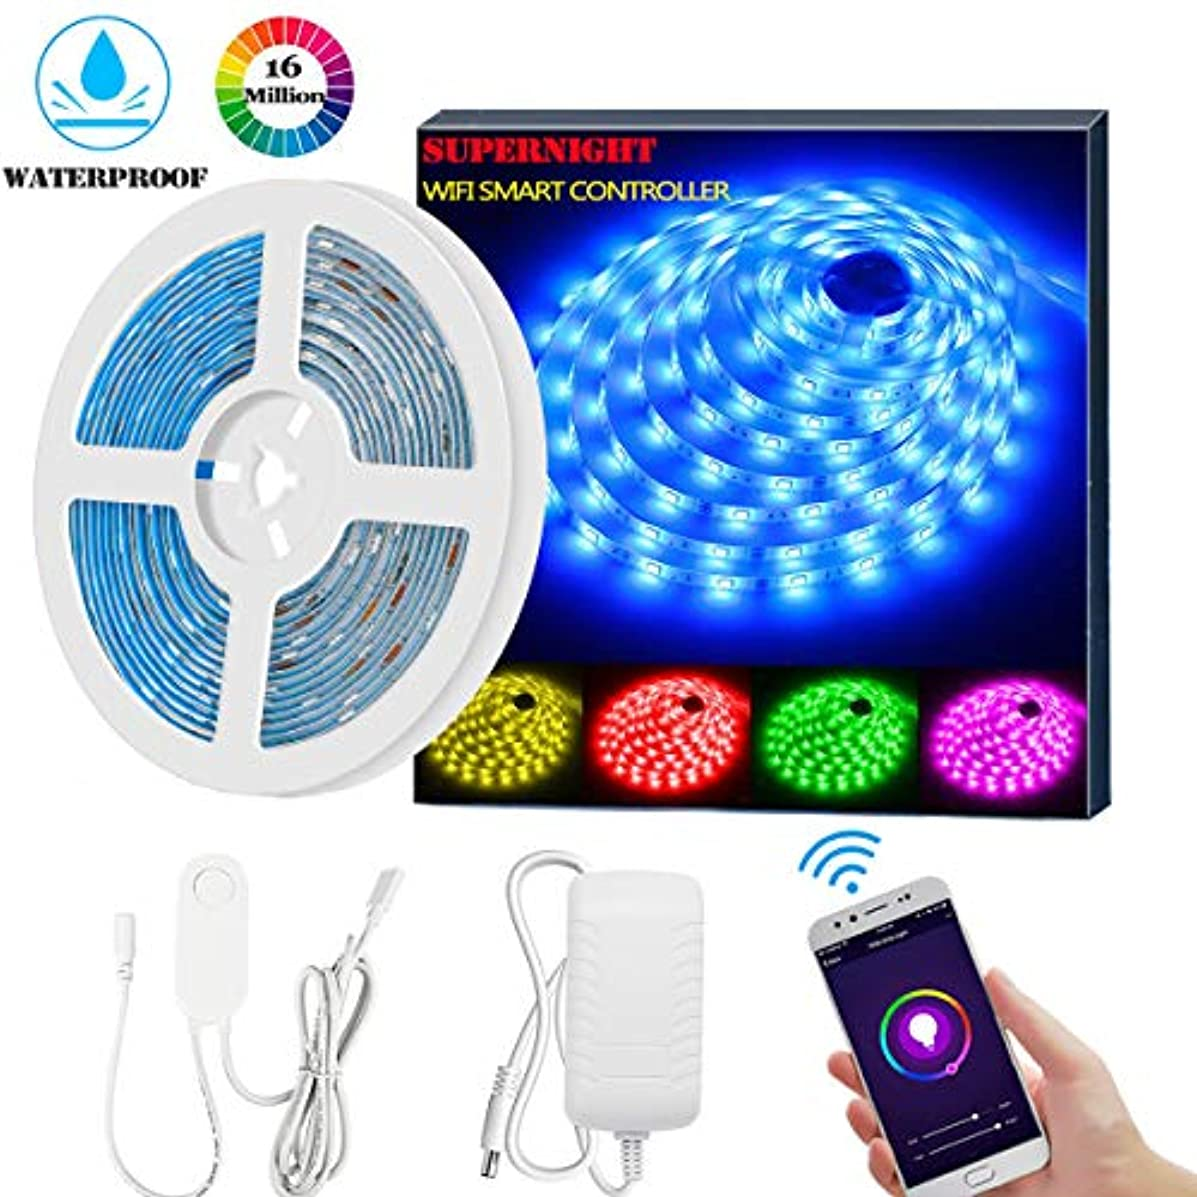 SUPERNIGHT Smart LED Strip Lights, WiFi Wireless Smart Phone Controlled LED Light Strips Kit 16.4ft Waterproof 5050 RGB Tape Lights, Support Alexa Google Assistant Voice Control, UL Power Supply?